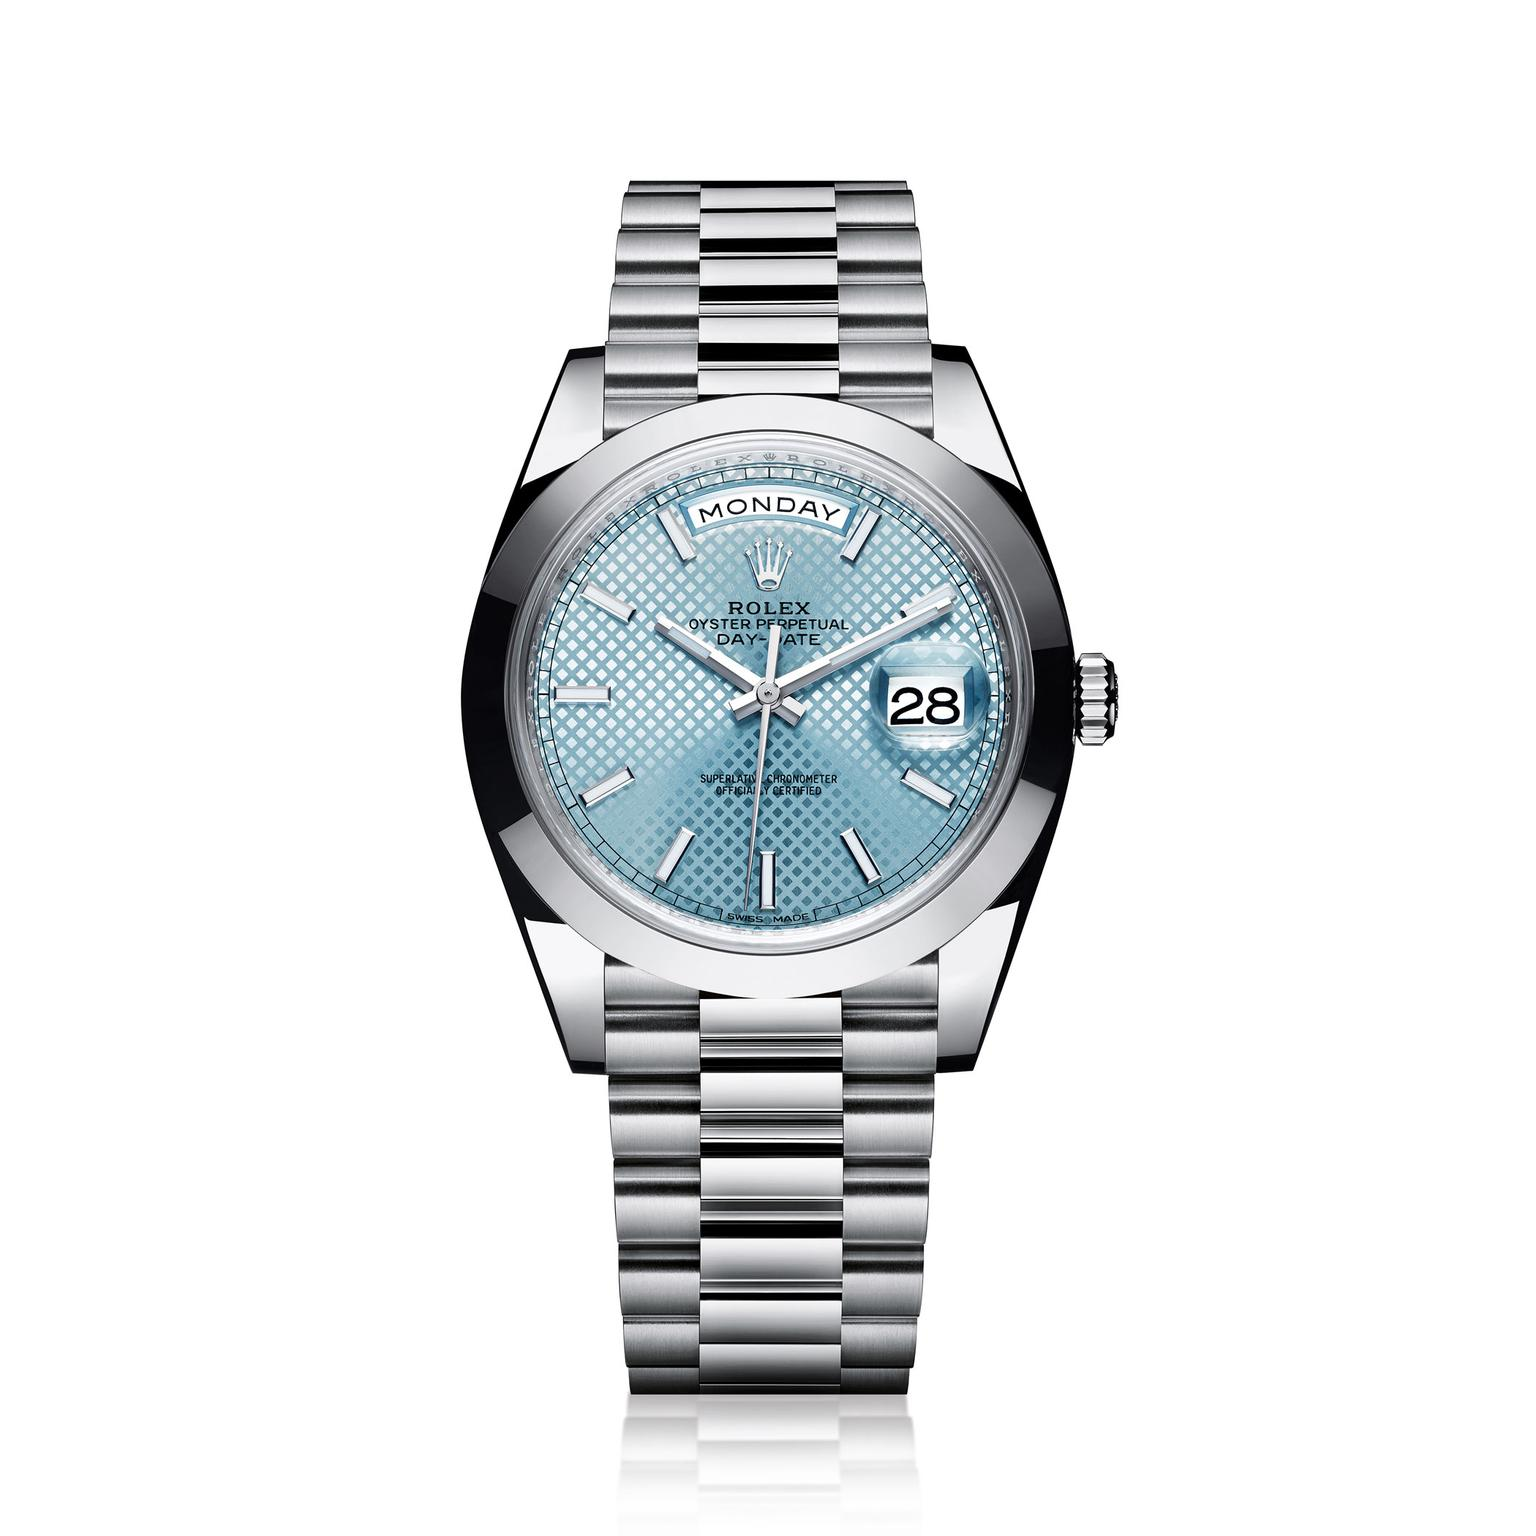 Rolex Day Date Platinum Men's Watch_zoom